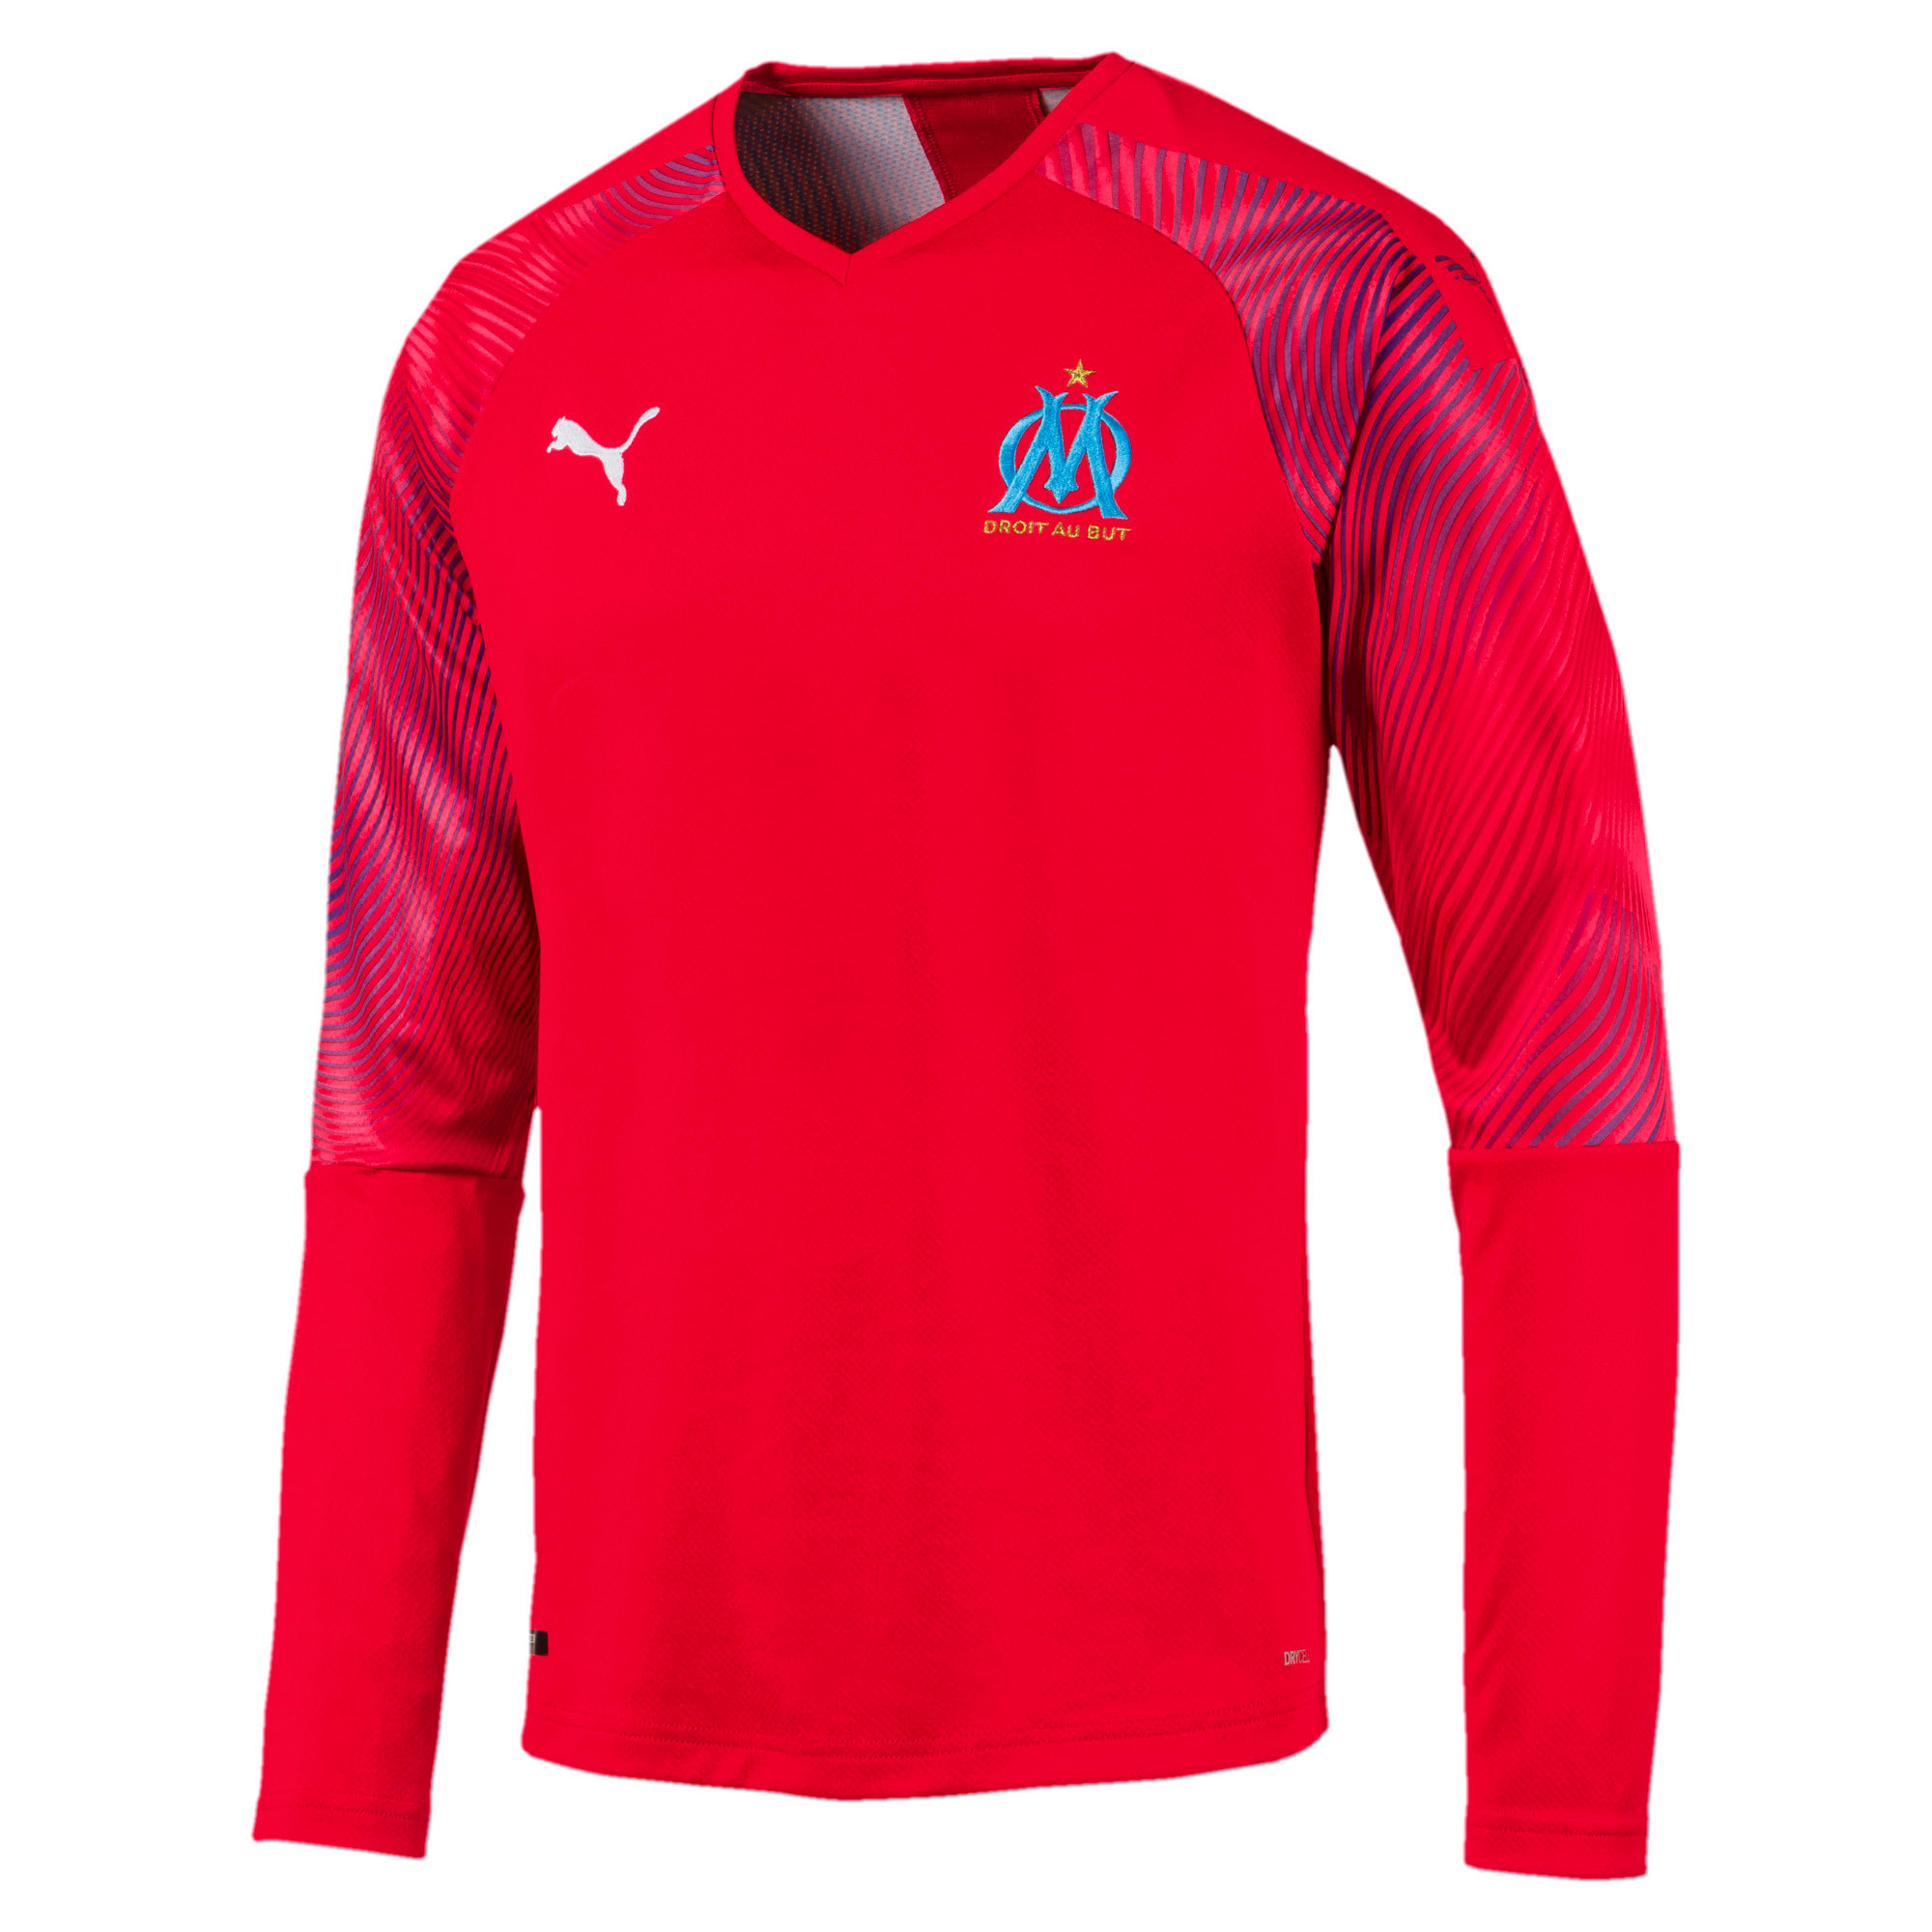 Thumbnail 1 of Olympique de Marseille Men's Replica Goalkeeper Jersey, Puma Red, medium